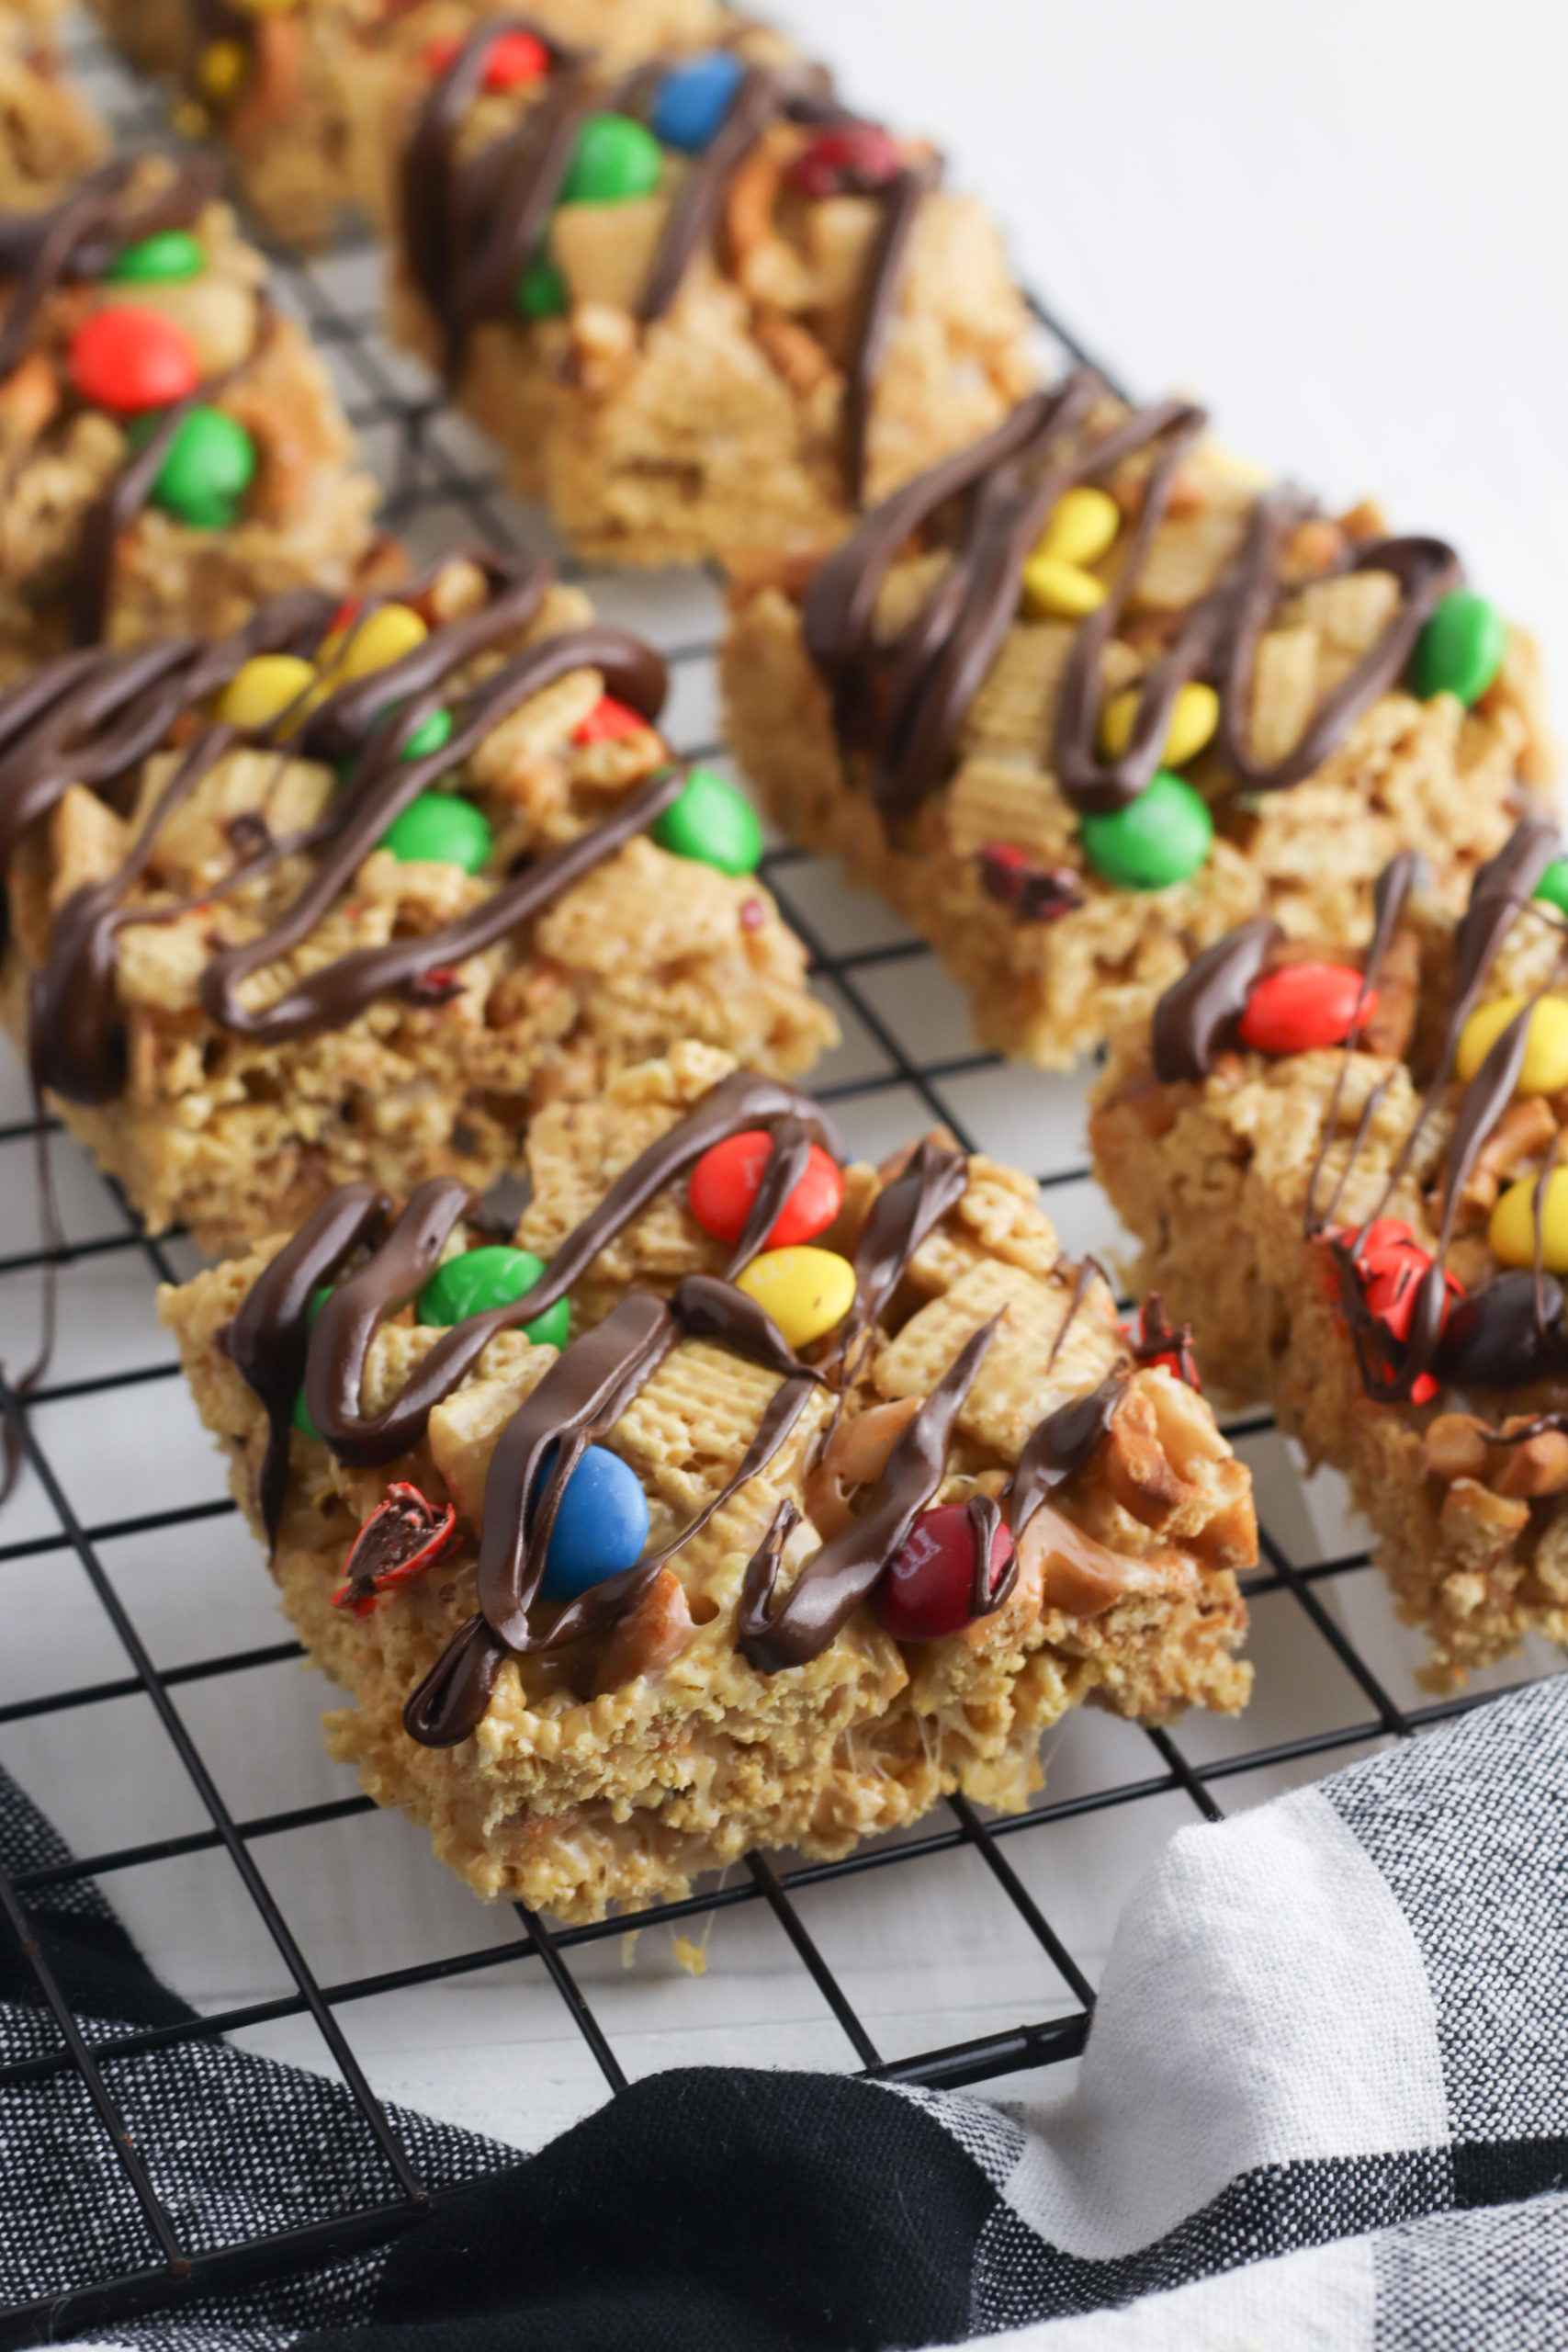 Rack with cut squares of Peanut Butter Chex bars.